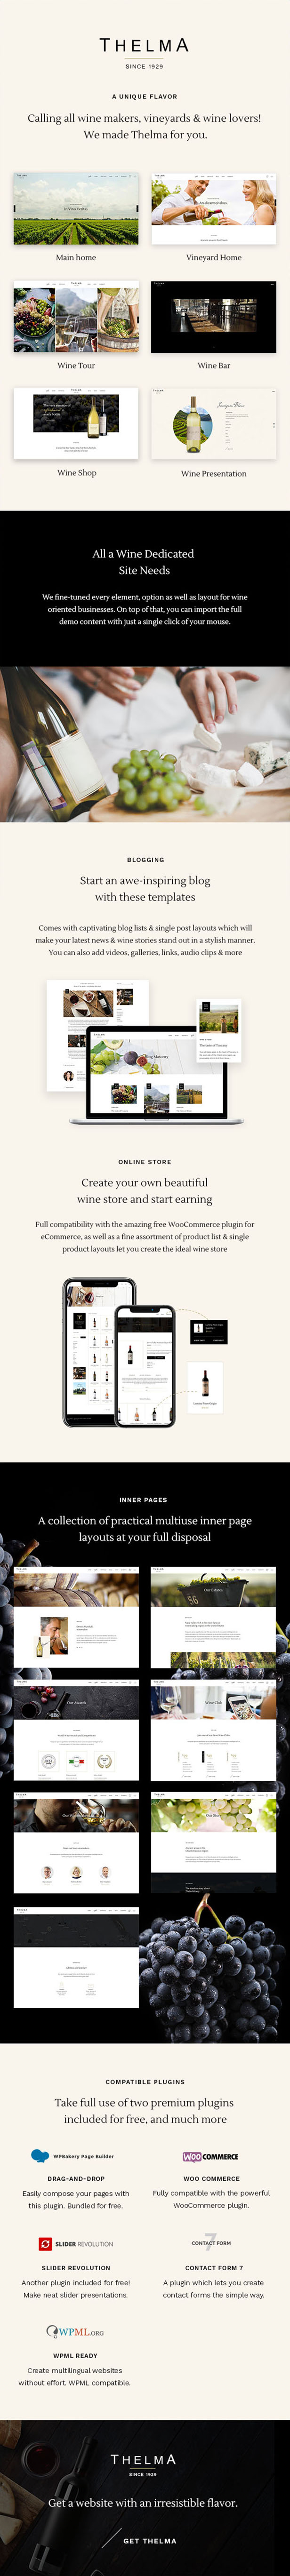 Thelma - Wine and Winery WordPress Theme - 1